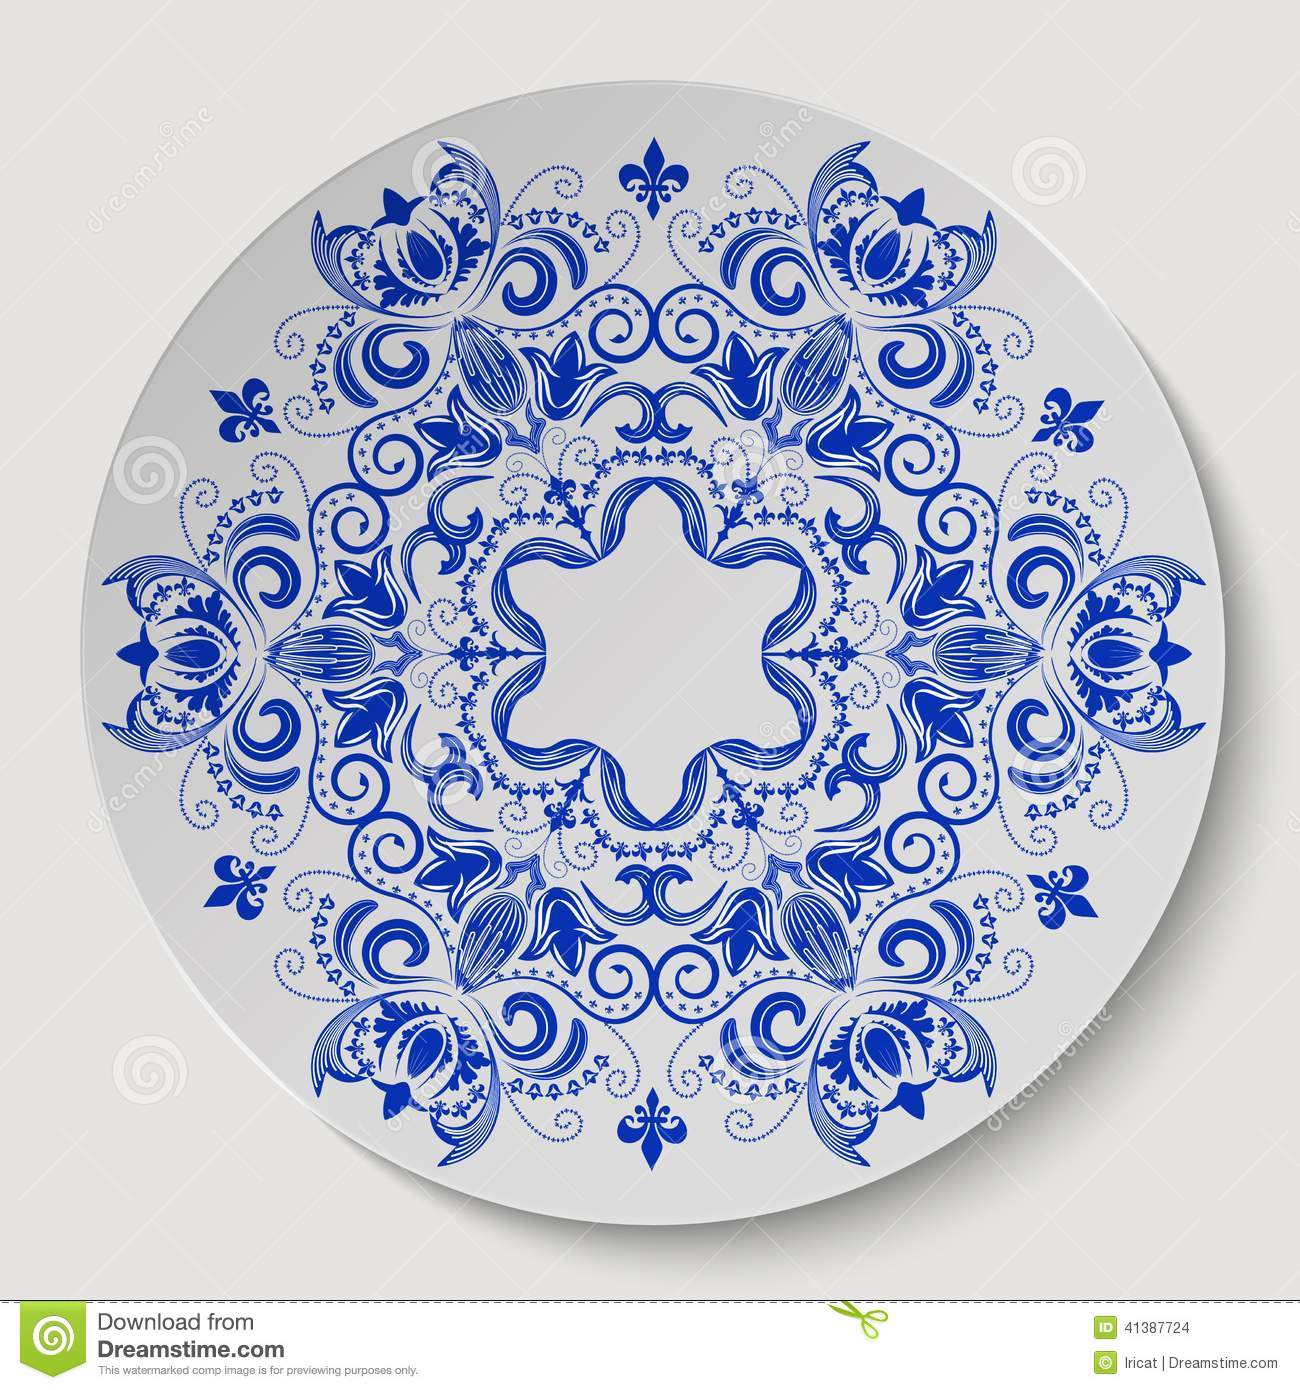 blue round floral ornament  pattern applied to the ceramic